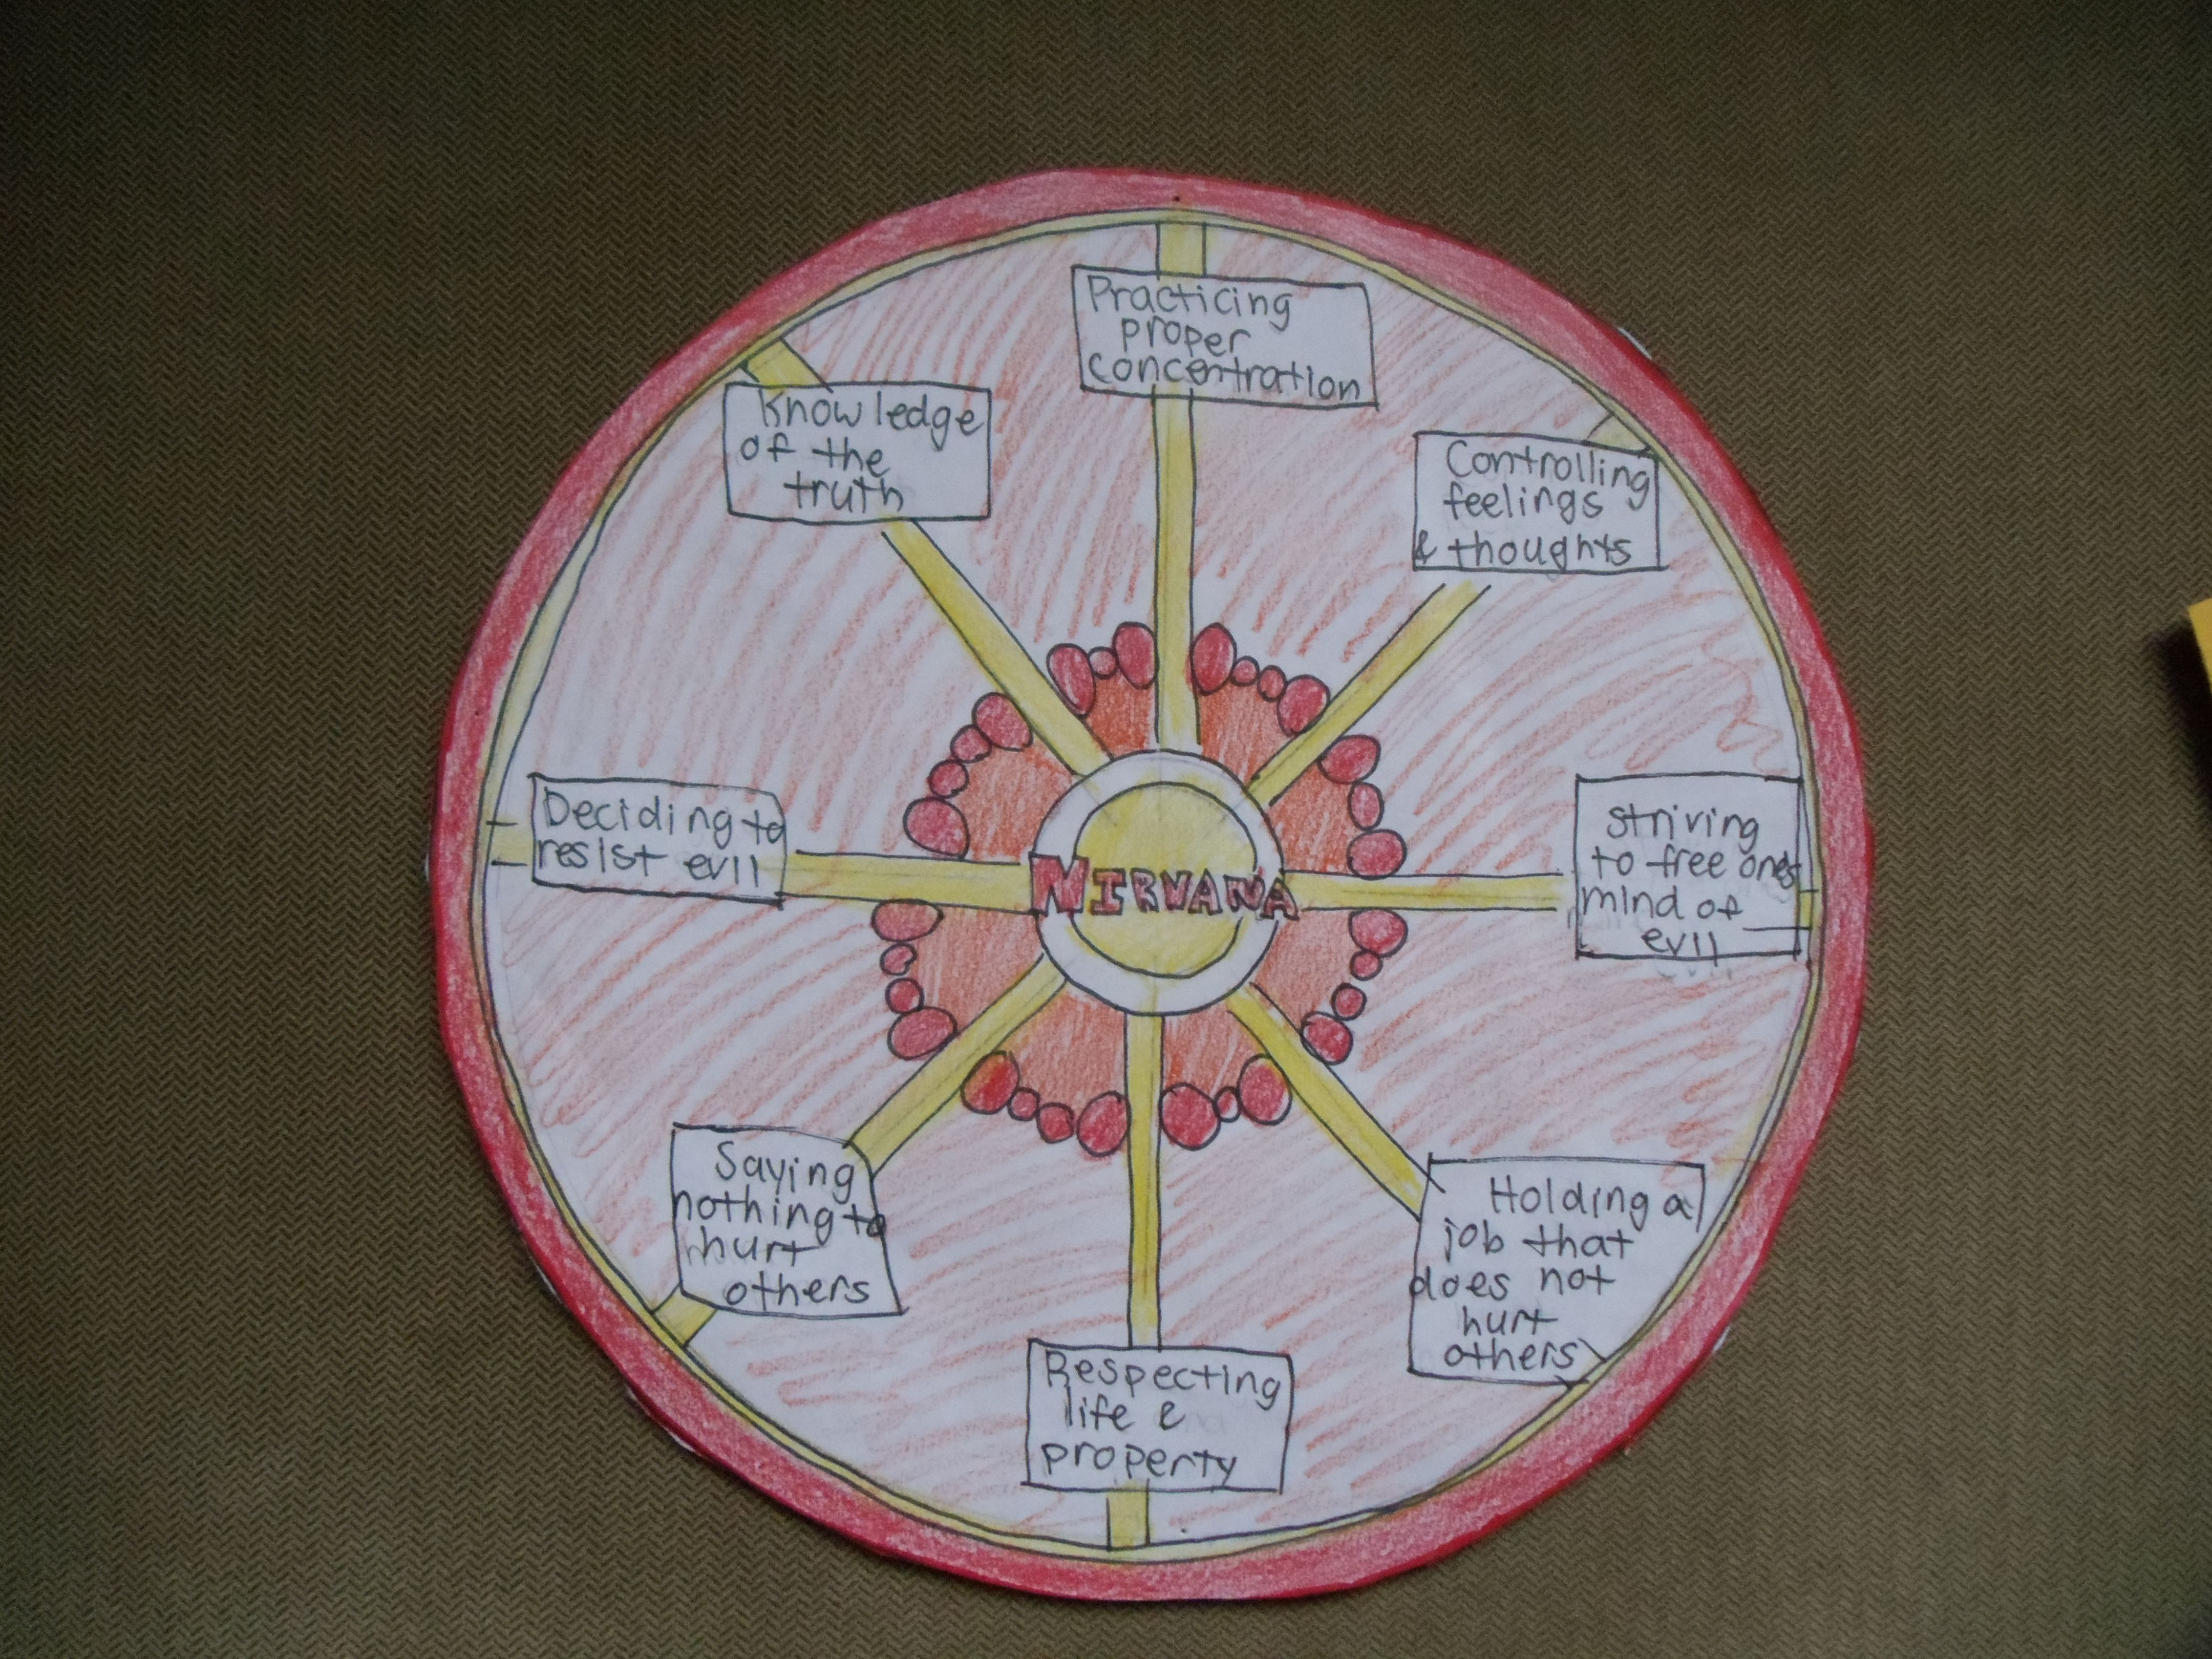 3 circle venn diagram pdf 98 jeep wrangler fuse eightfold path & buddhism | sixth grade history writing! pinterest buddhism, paths and ...